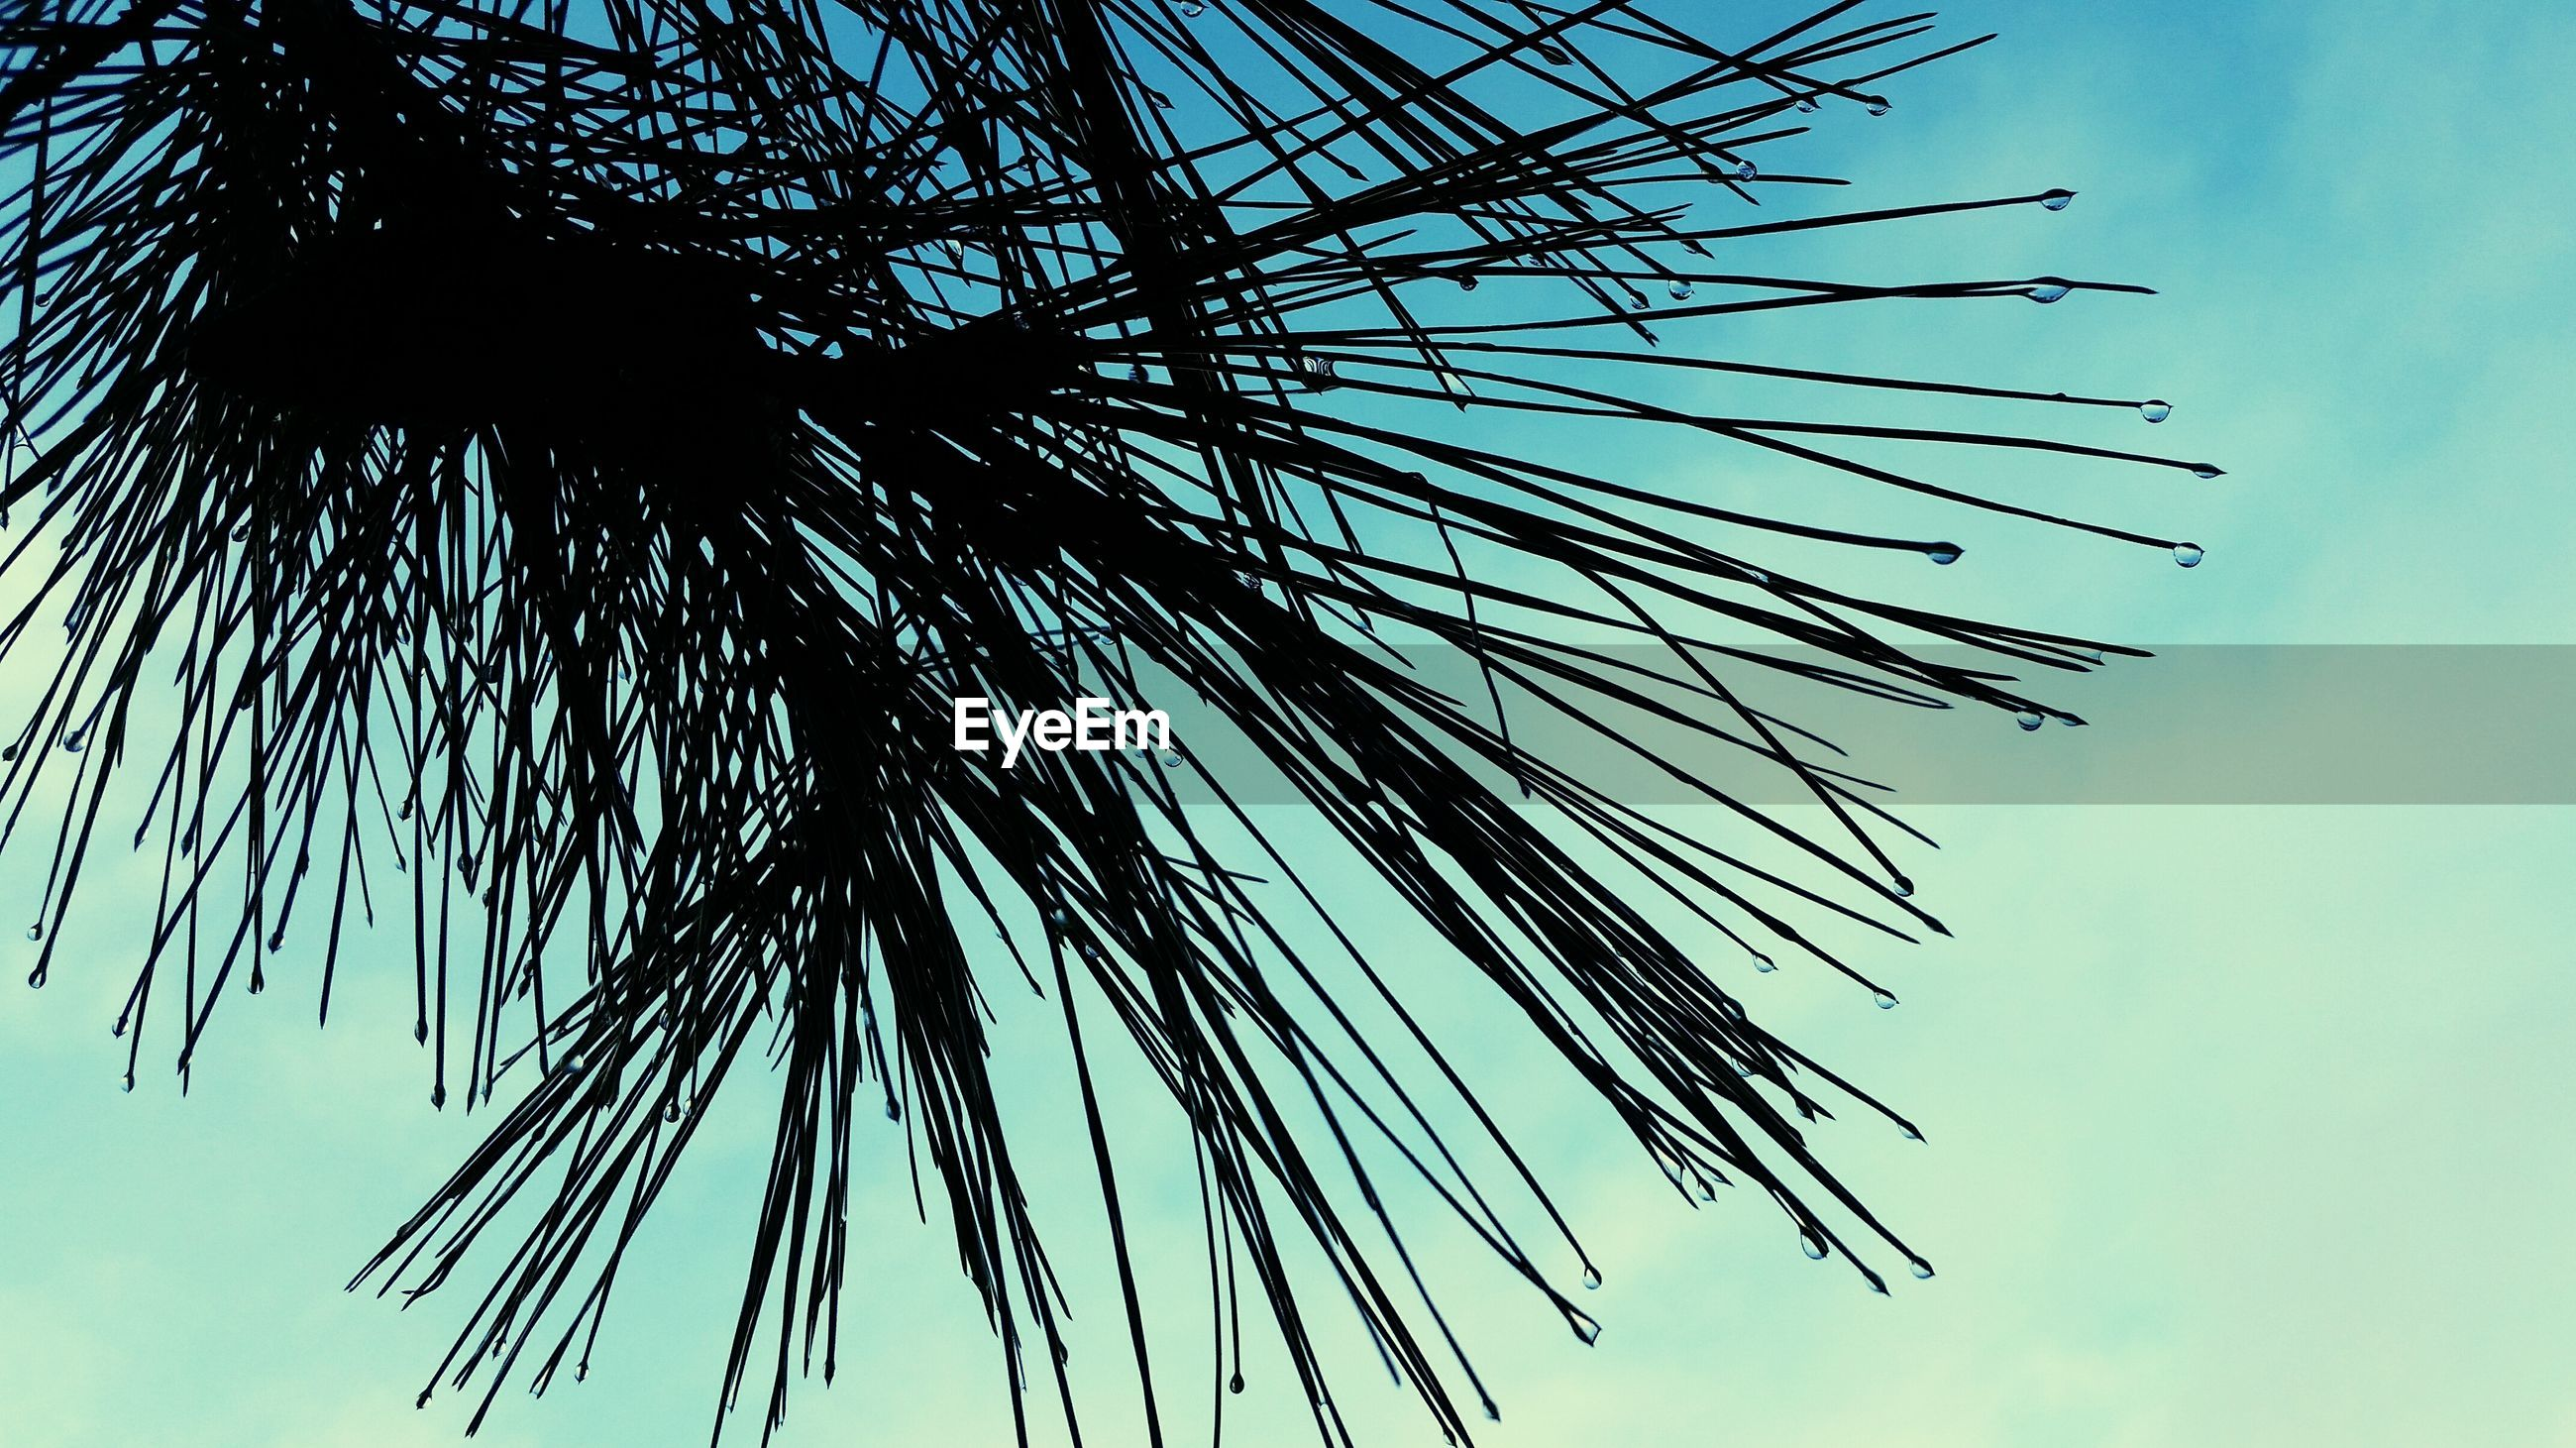 low angle view, sky, clear sky, growth, silhouette, nature, outdoors, no people, day, palm tree, beauty in nature, close-up, tree, tall - high, blue, branch, tranquility, fragility, part of, leaf